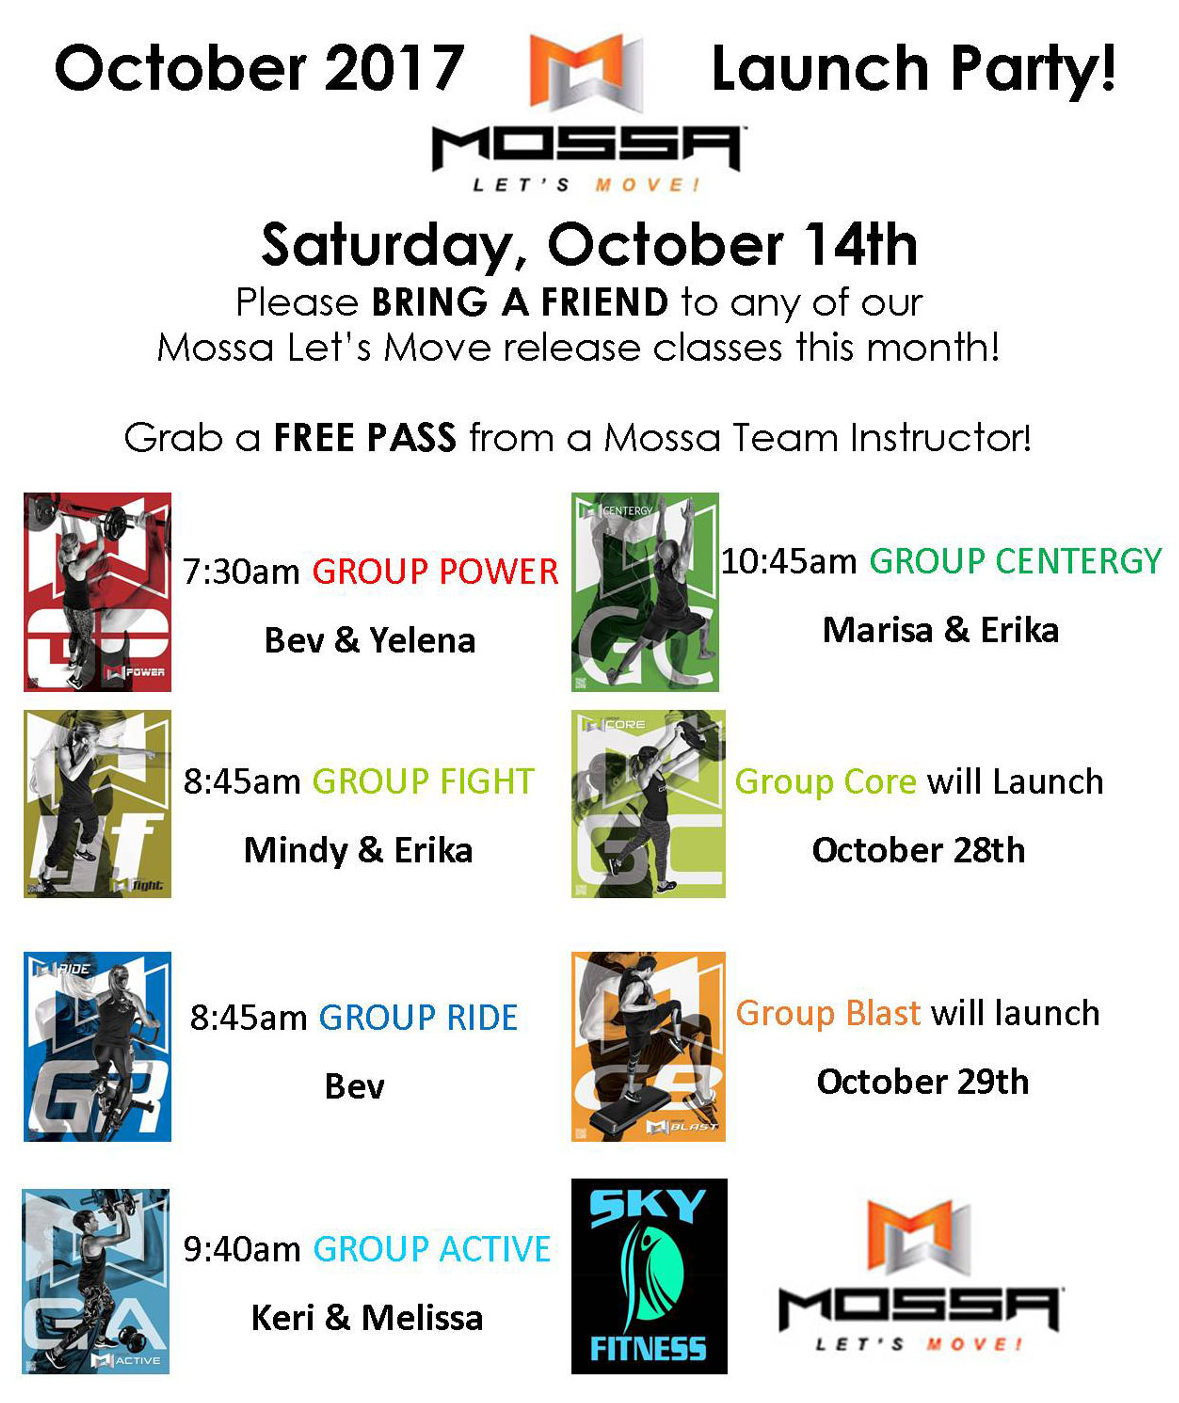 Mossa Launch Party Oct. 2017 - Sky Fitness Chicago